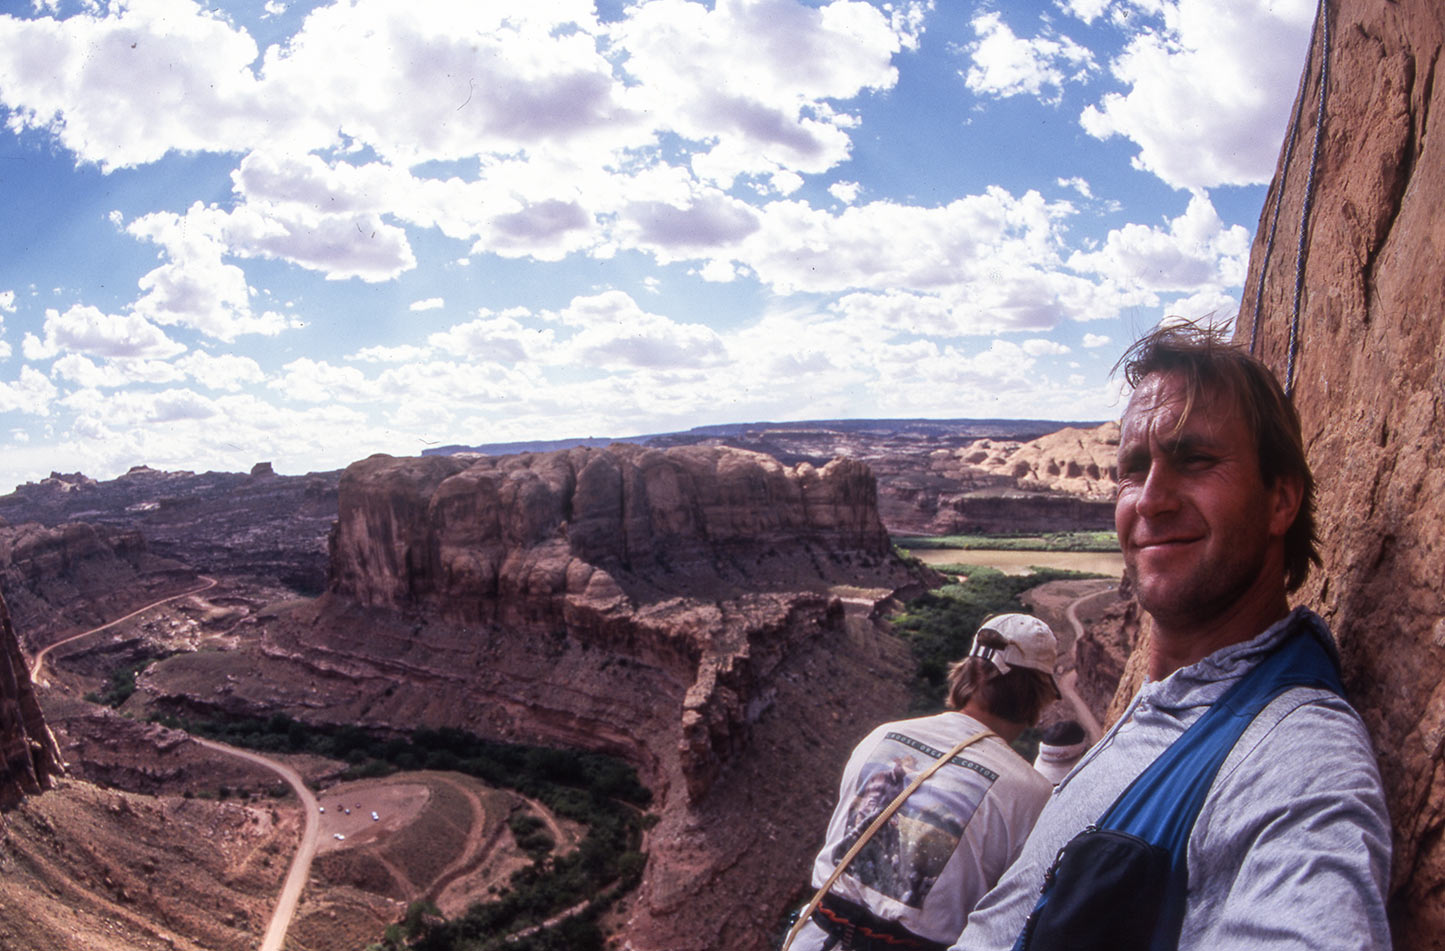 Getting ready for a panoramic view action shot of climbers on the edge of Heaven in Moab/Utah.